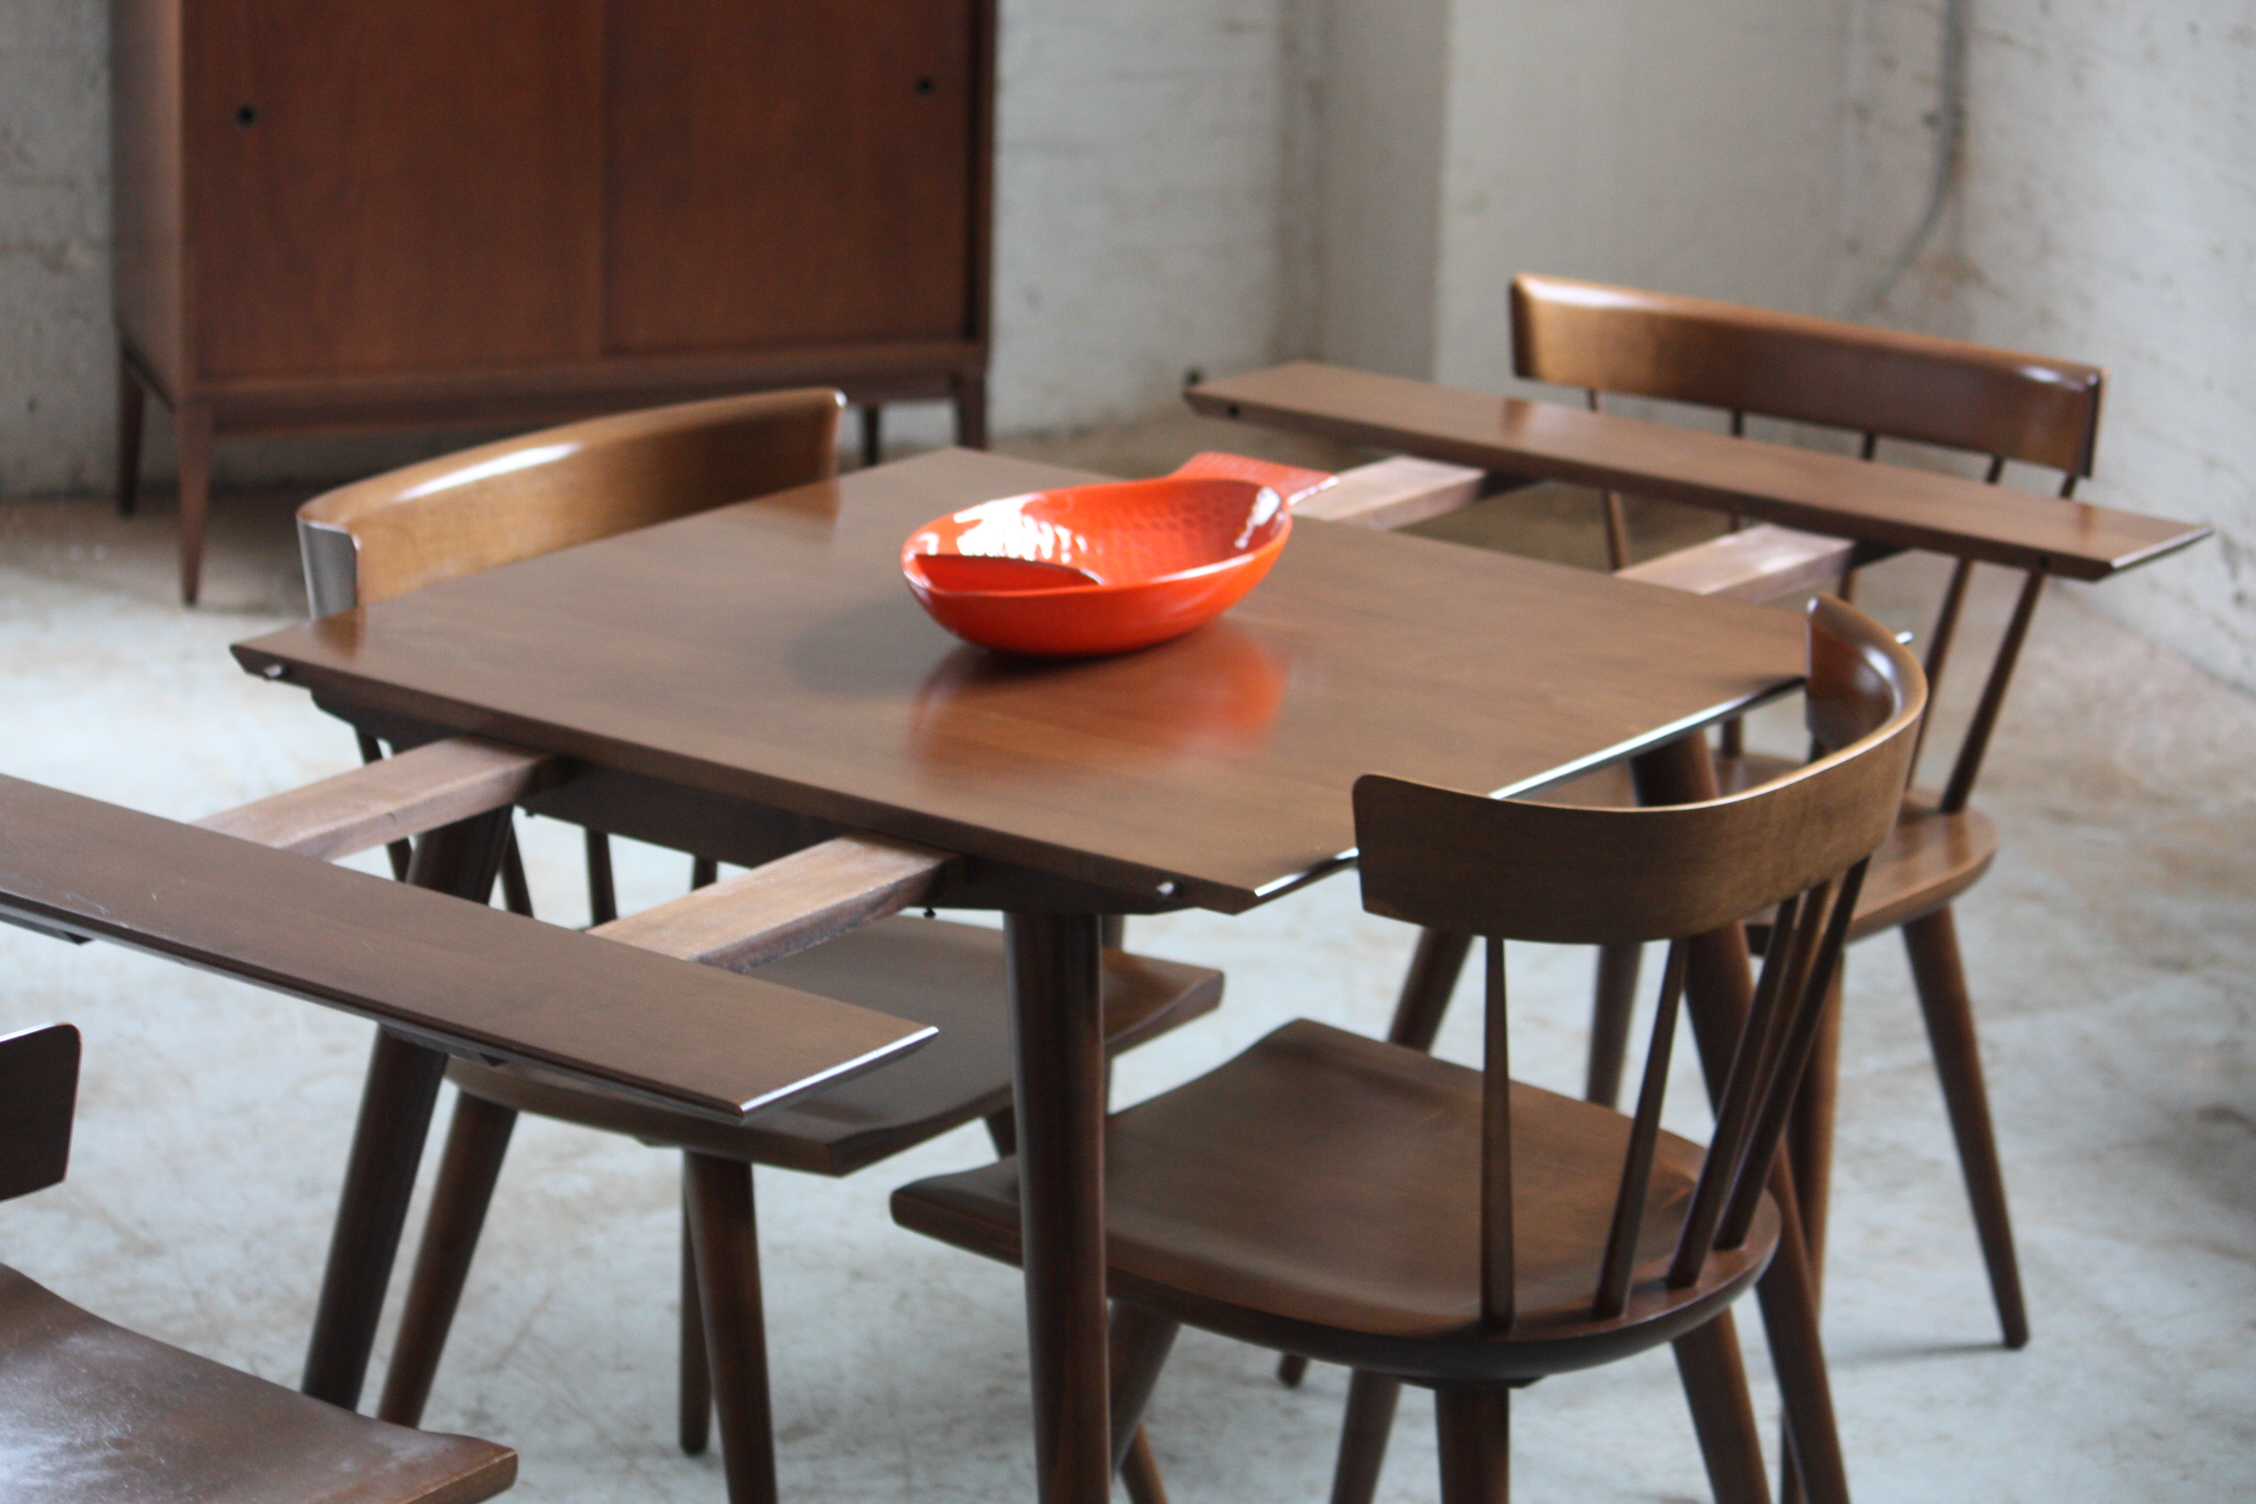 square dining room table for 4 | Square Dining Table For 4 | HomesFeed